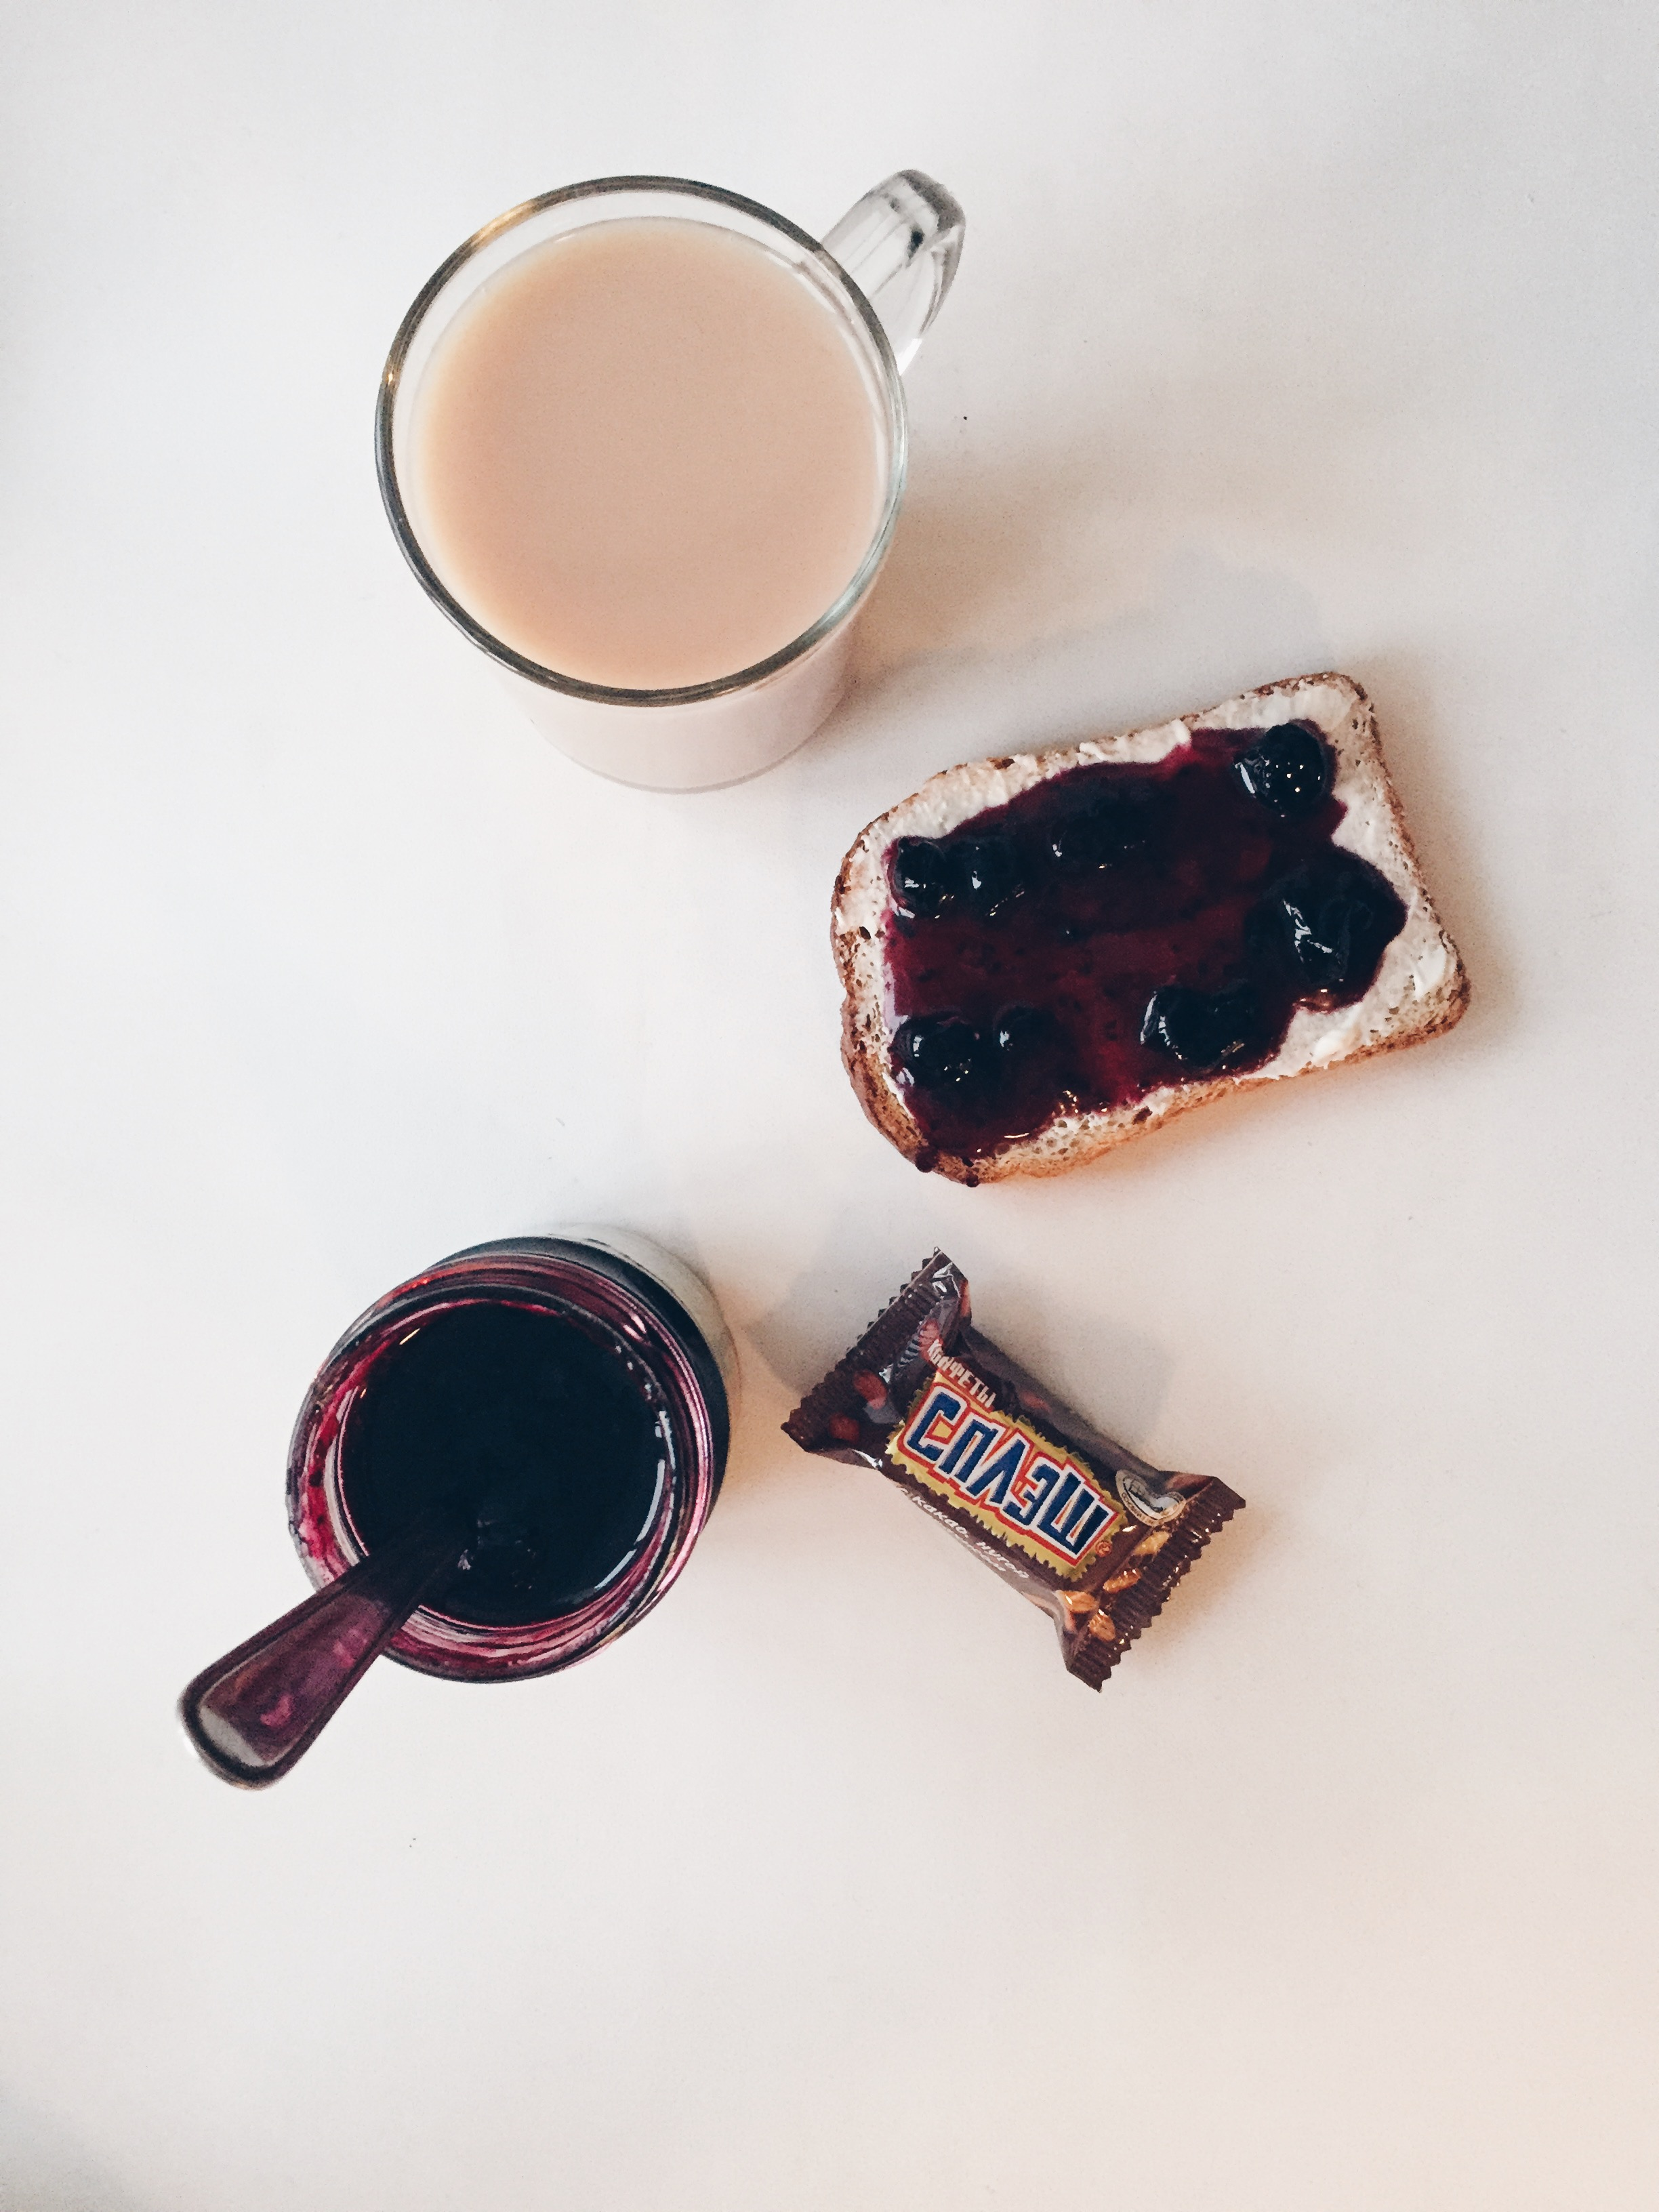 A Snickers-esque candy, homemade black currant jam, and some sweet chai.